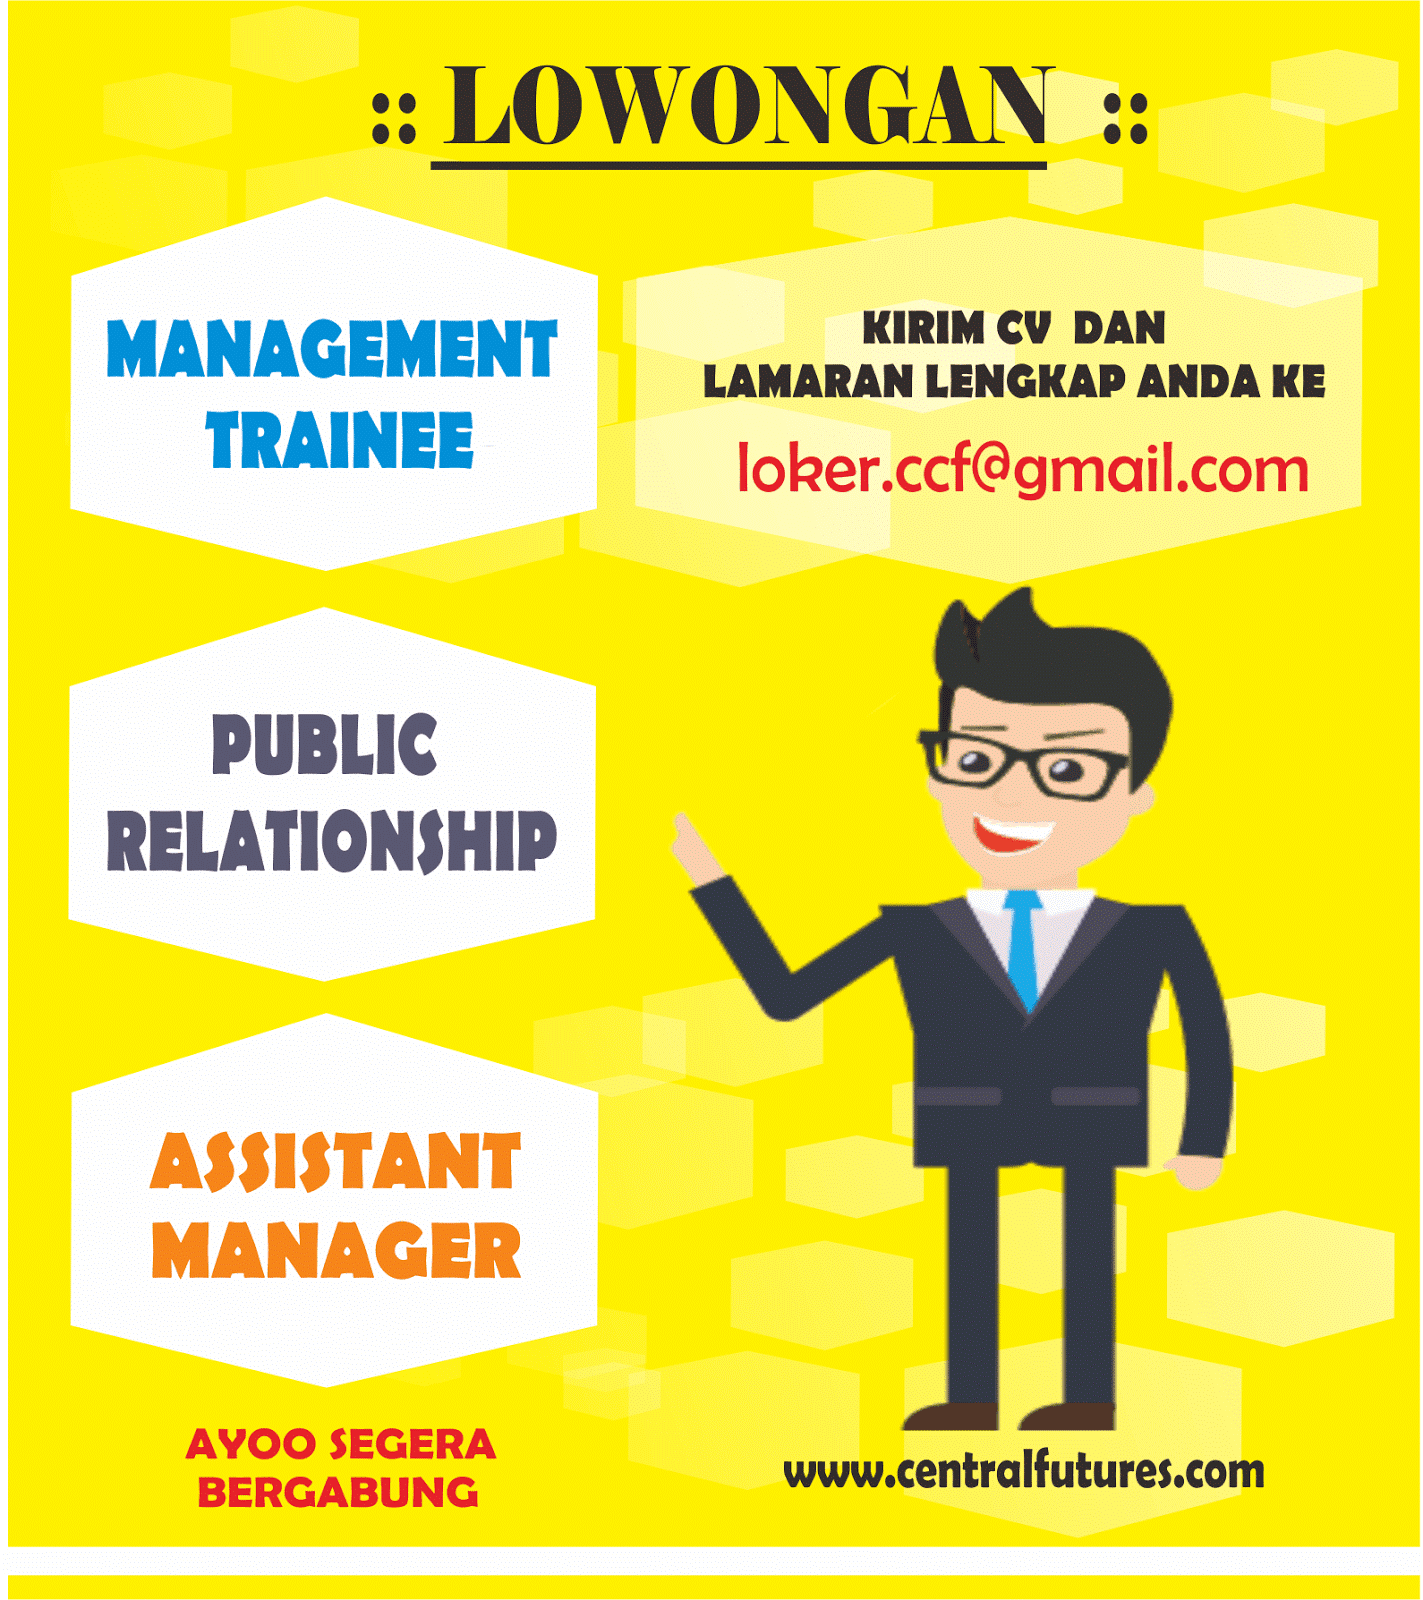 walk in interview di pt central capital yogyakarta management lowongan kerja di pt asiadaya abadi kudus s representative accounting hrd legal sekretaris area officer